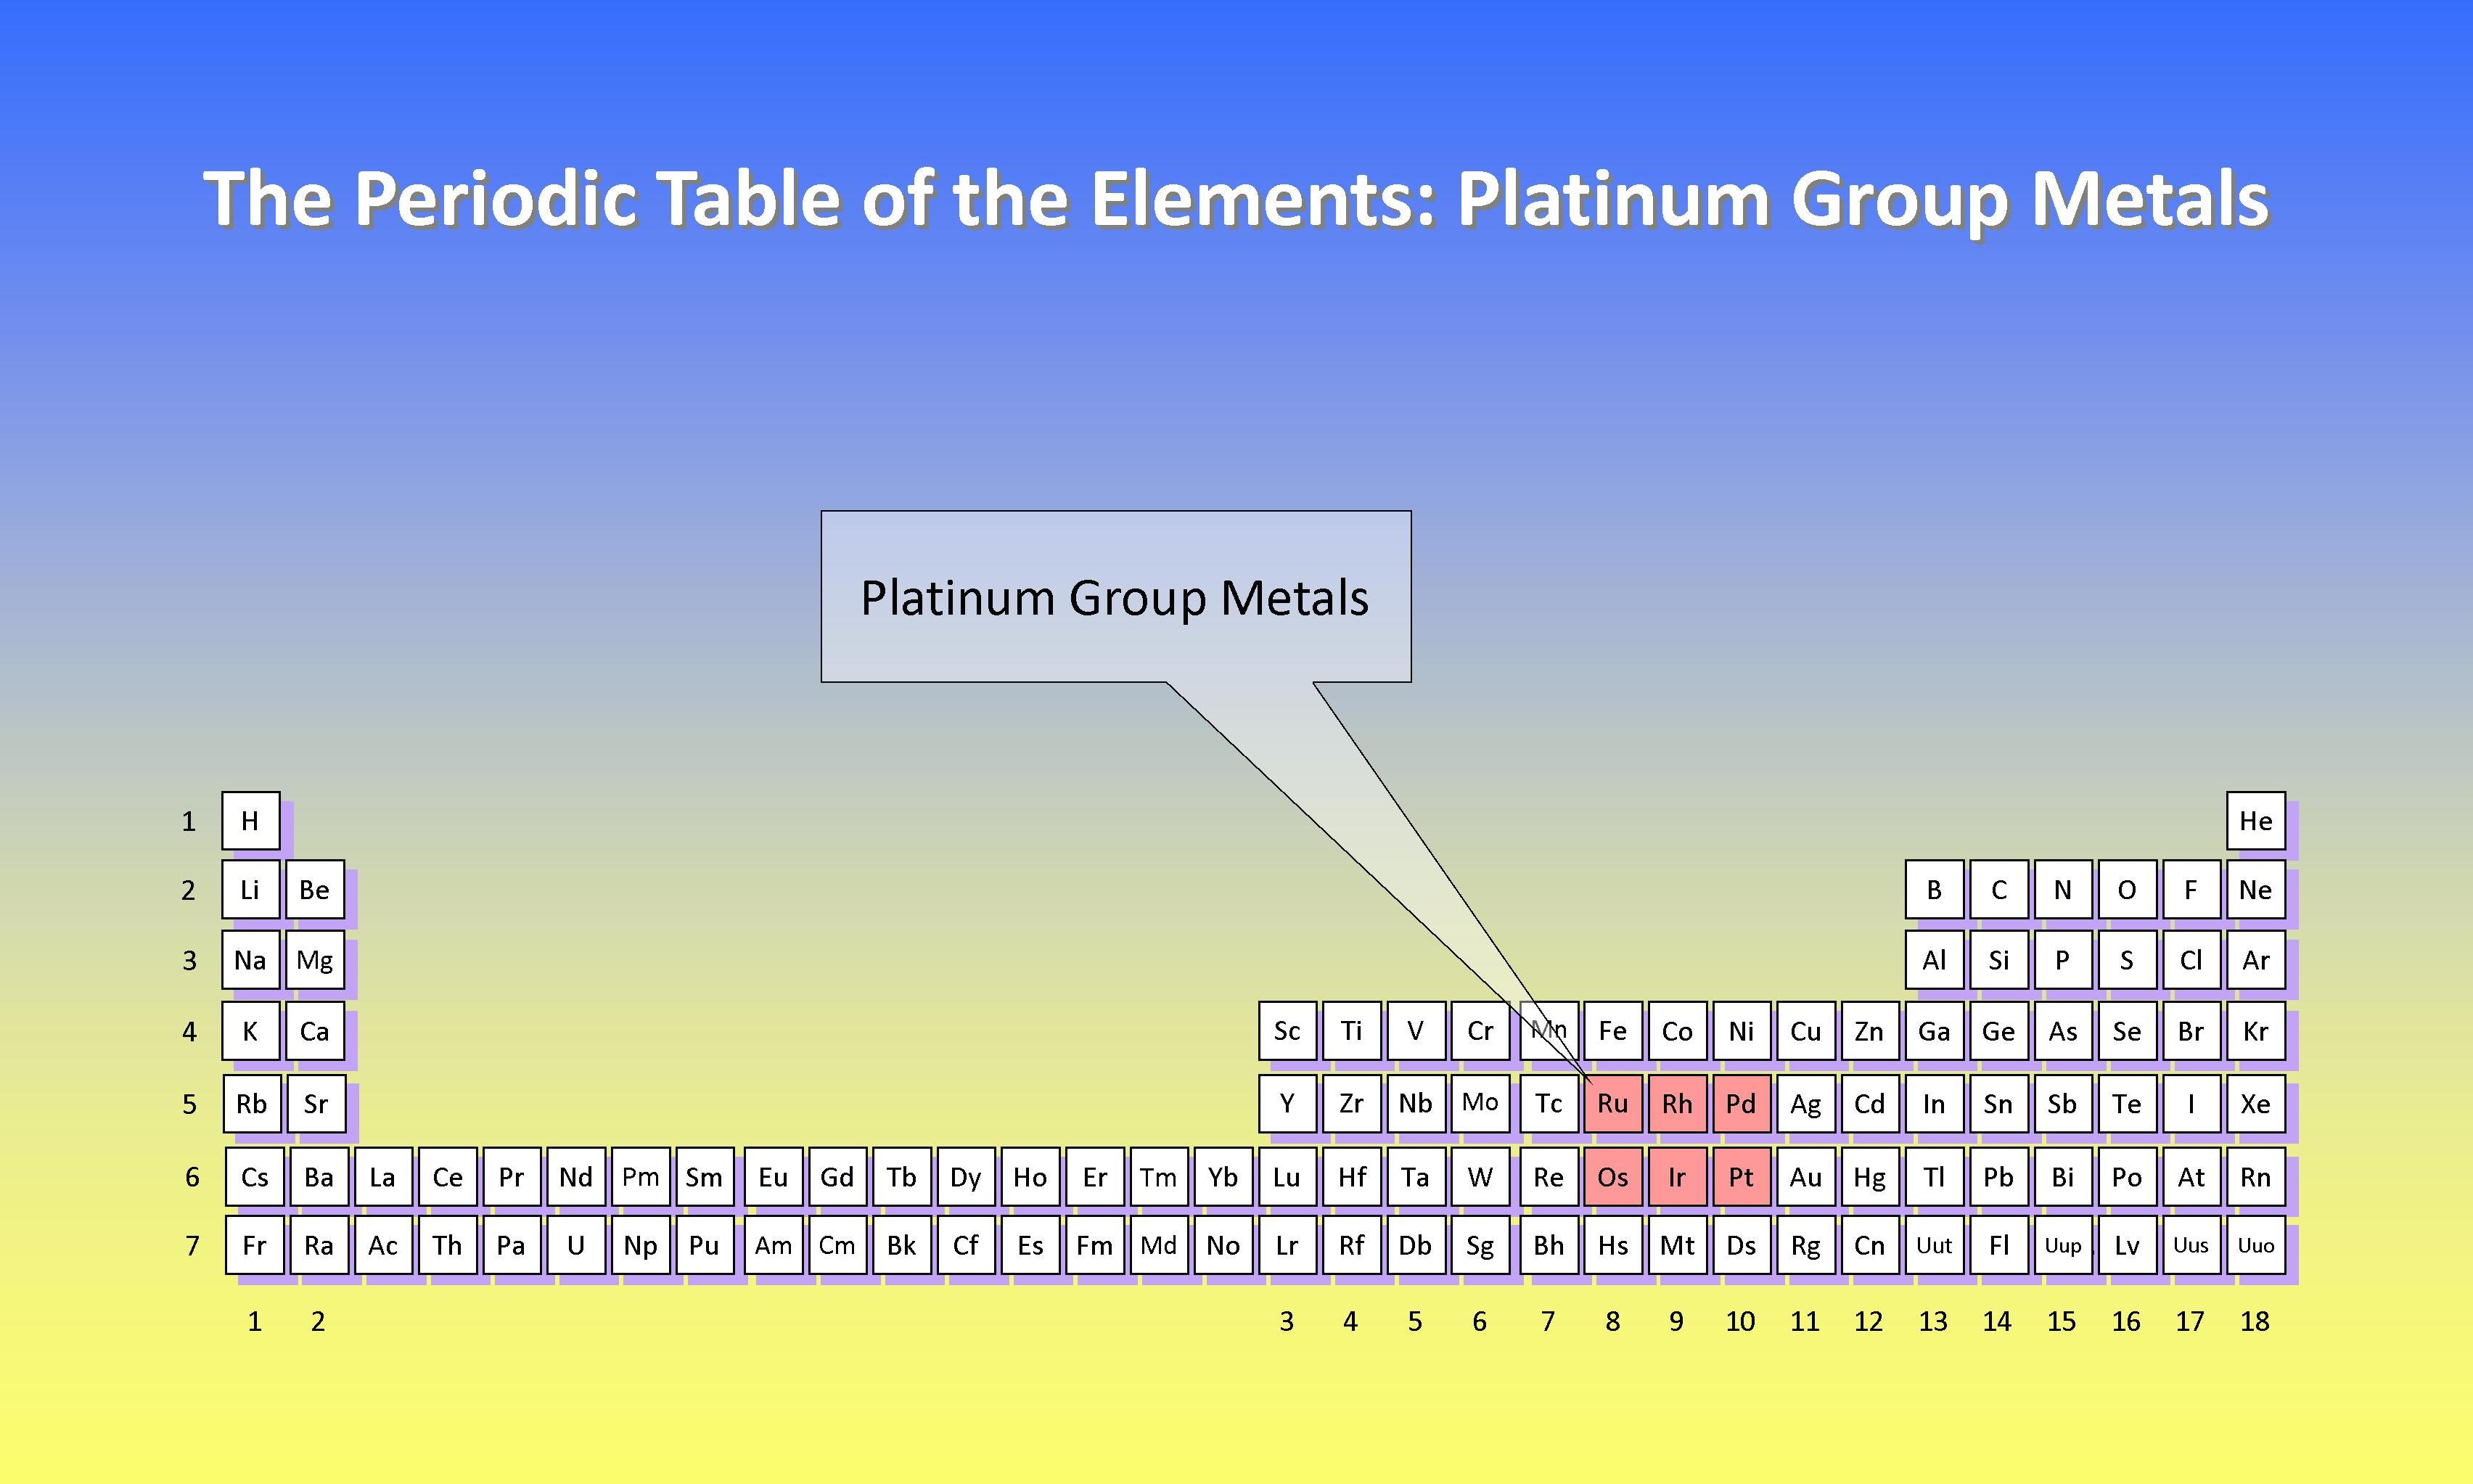 Platinum group metals geology for investors the location of the platinum group metals in the periodic table of the elements gamestrikefo Gallery